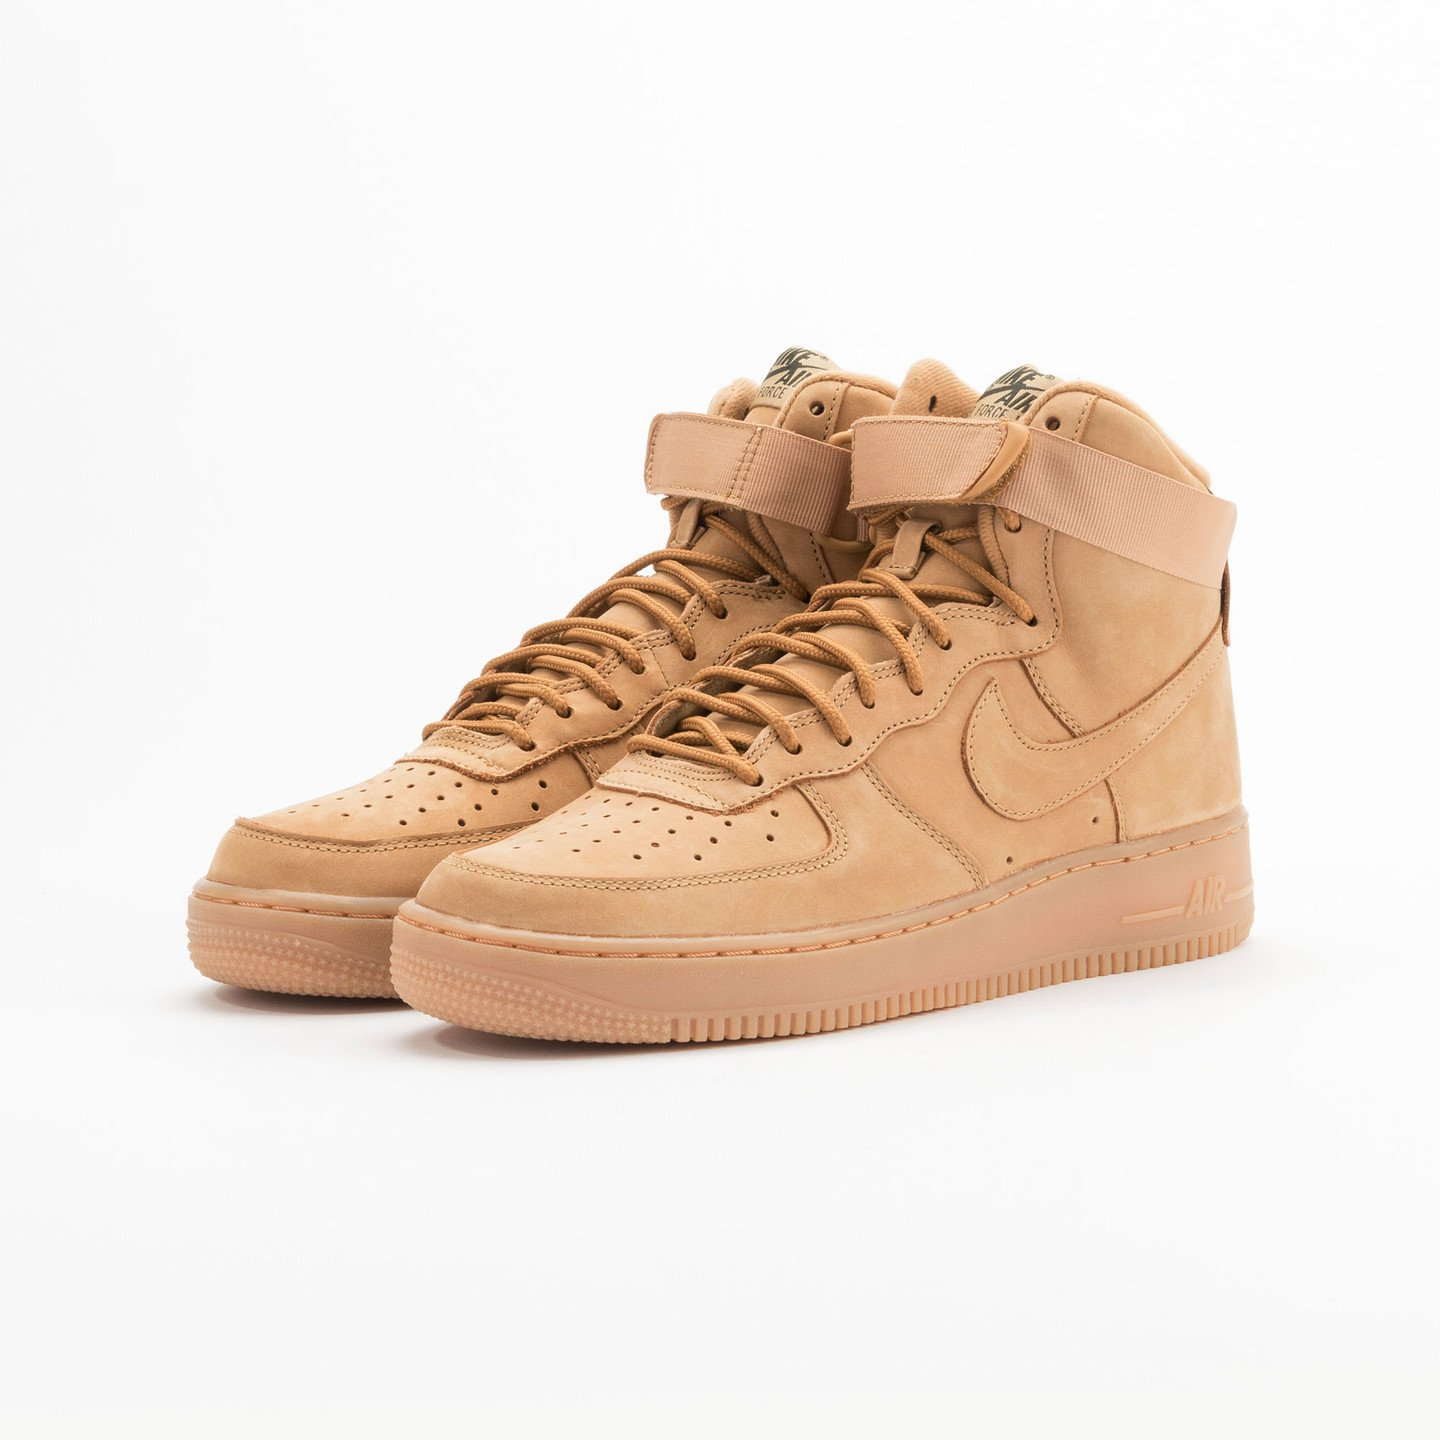 Nike Air Force 1 High ´07 LV8 Flax / Flax 806403-200-45